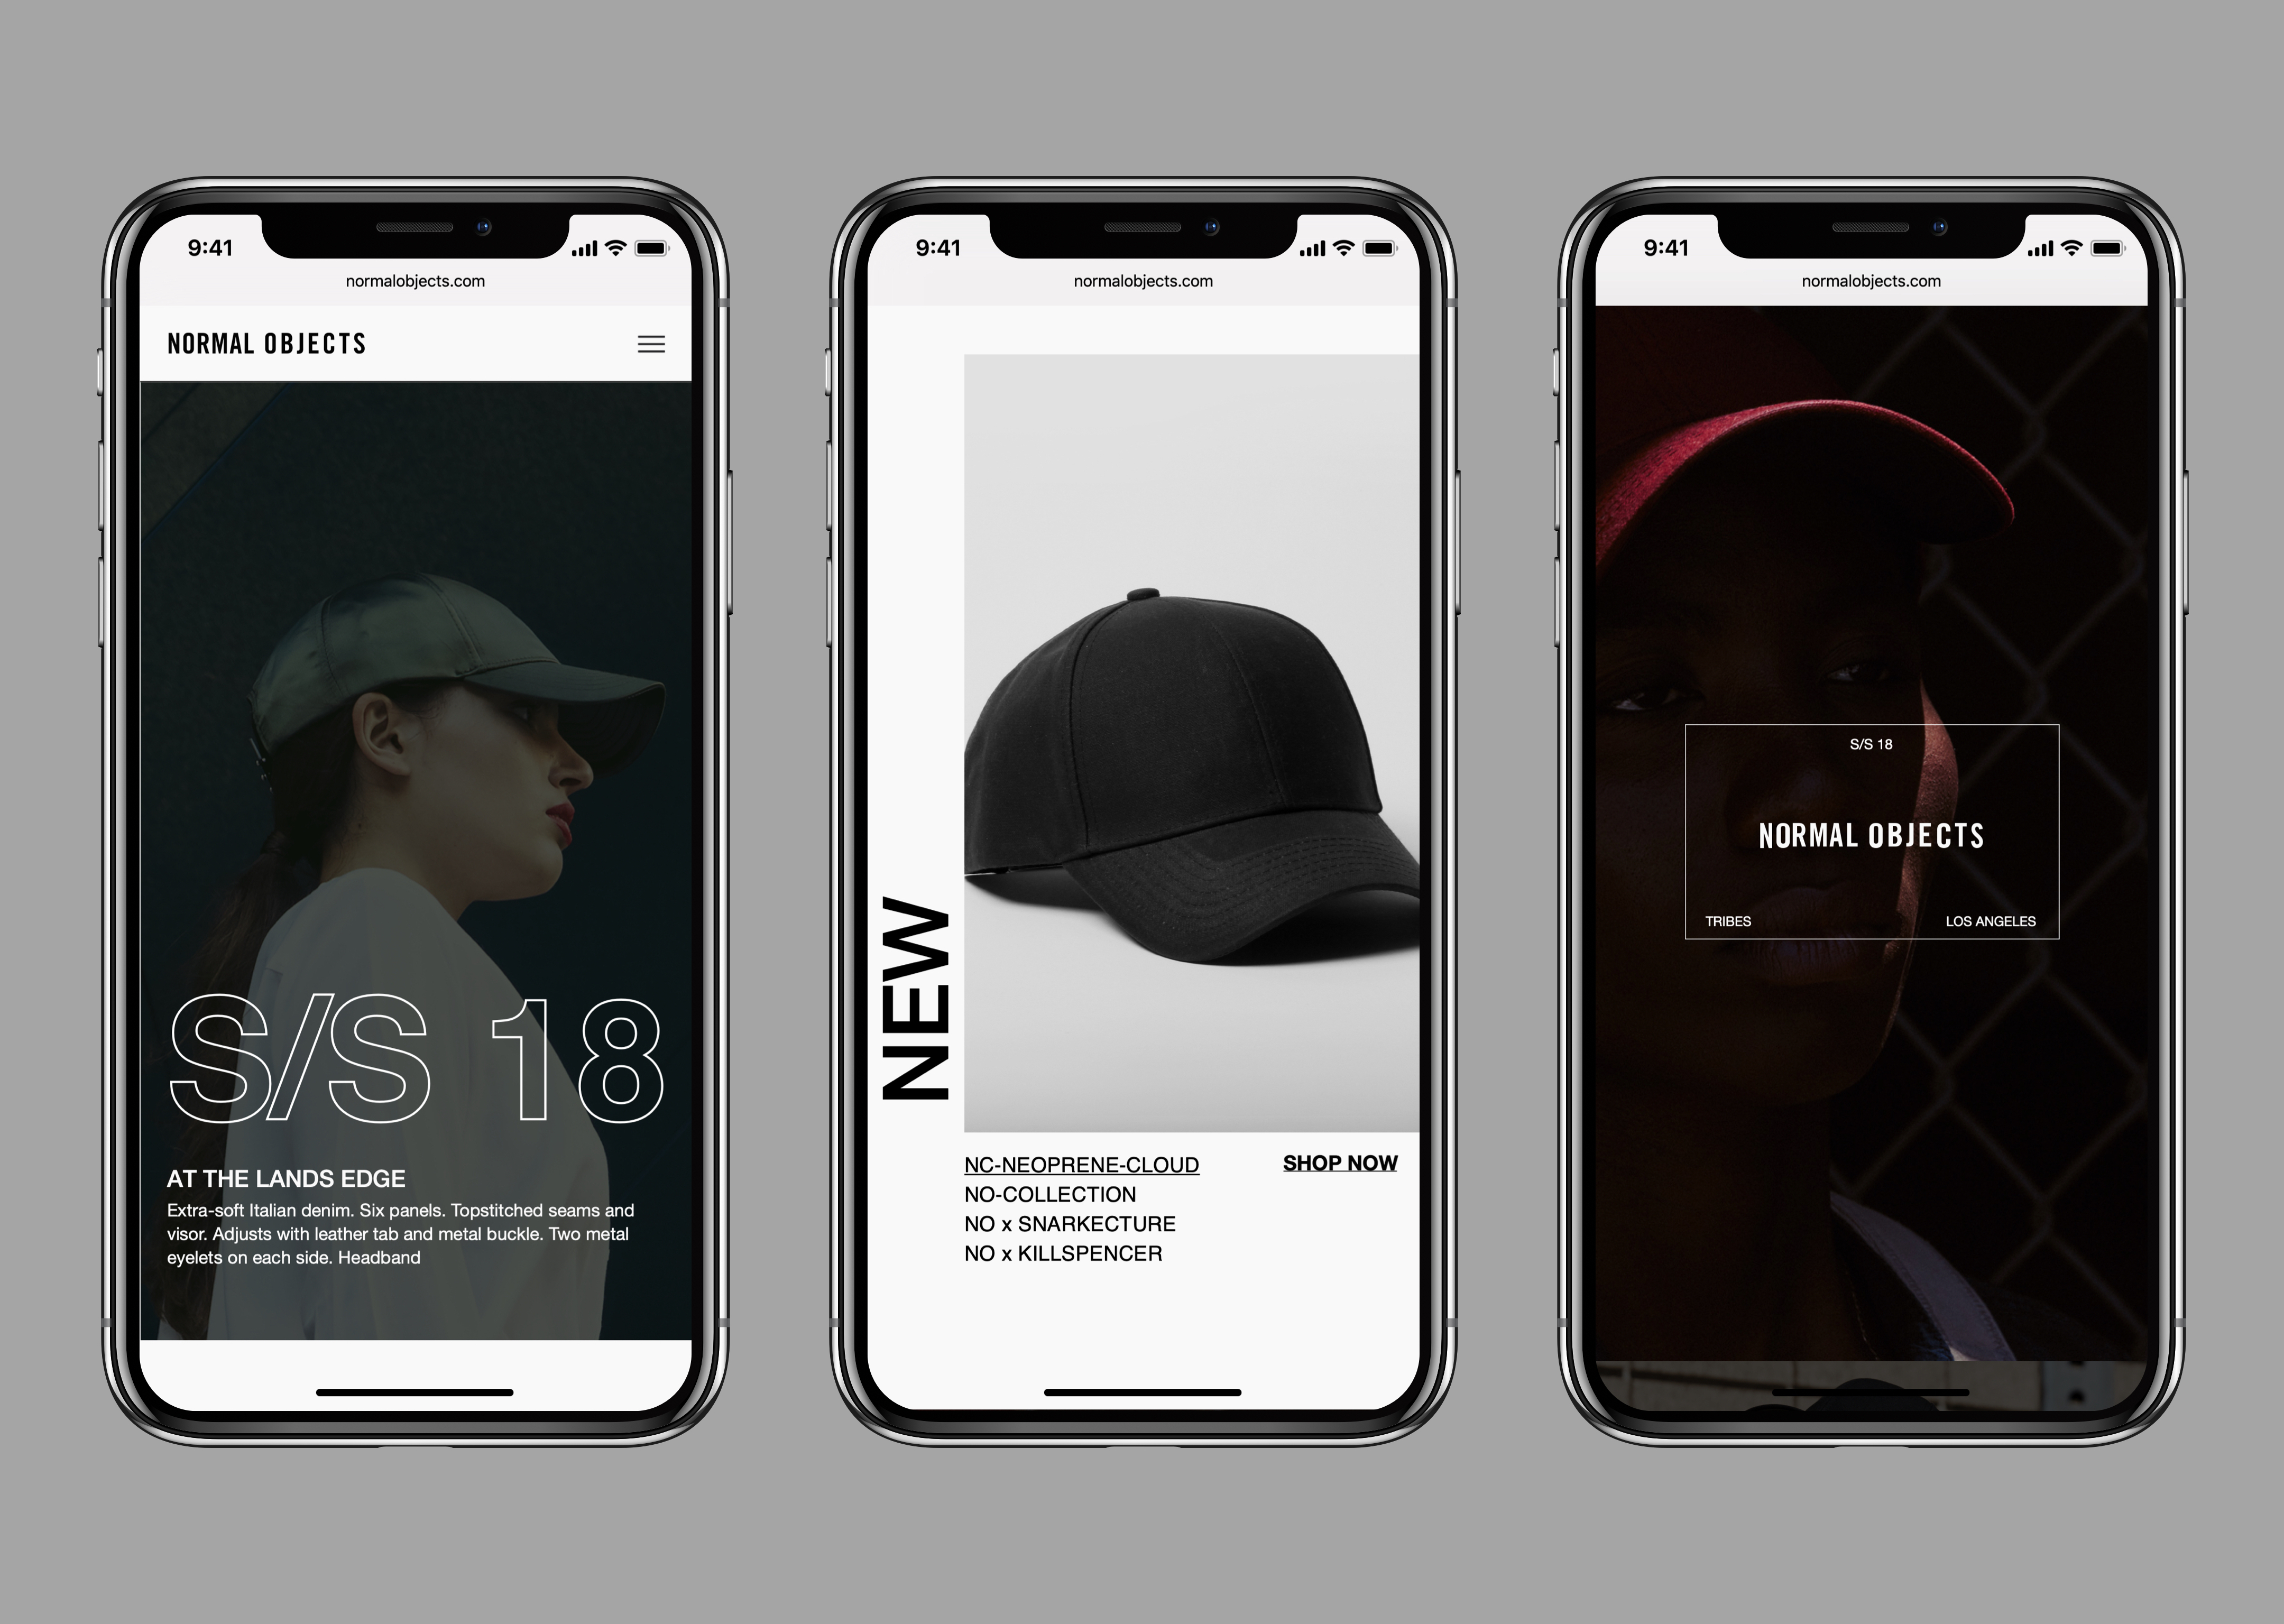 Normal_Objects_iphone_mockup-03